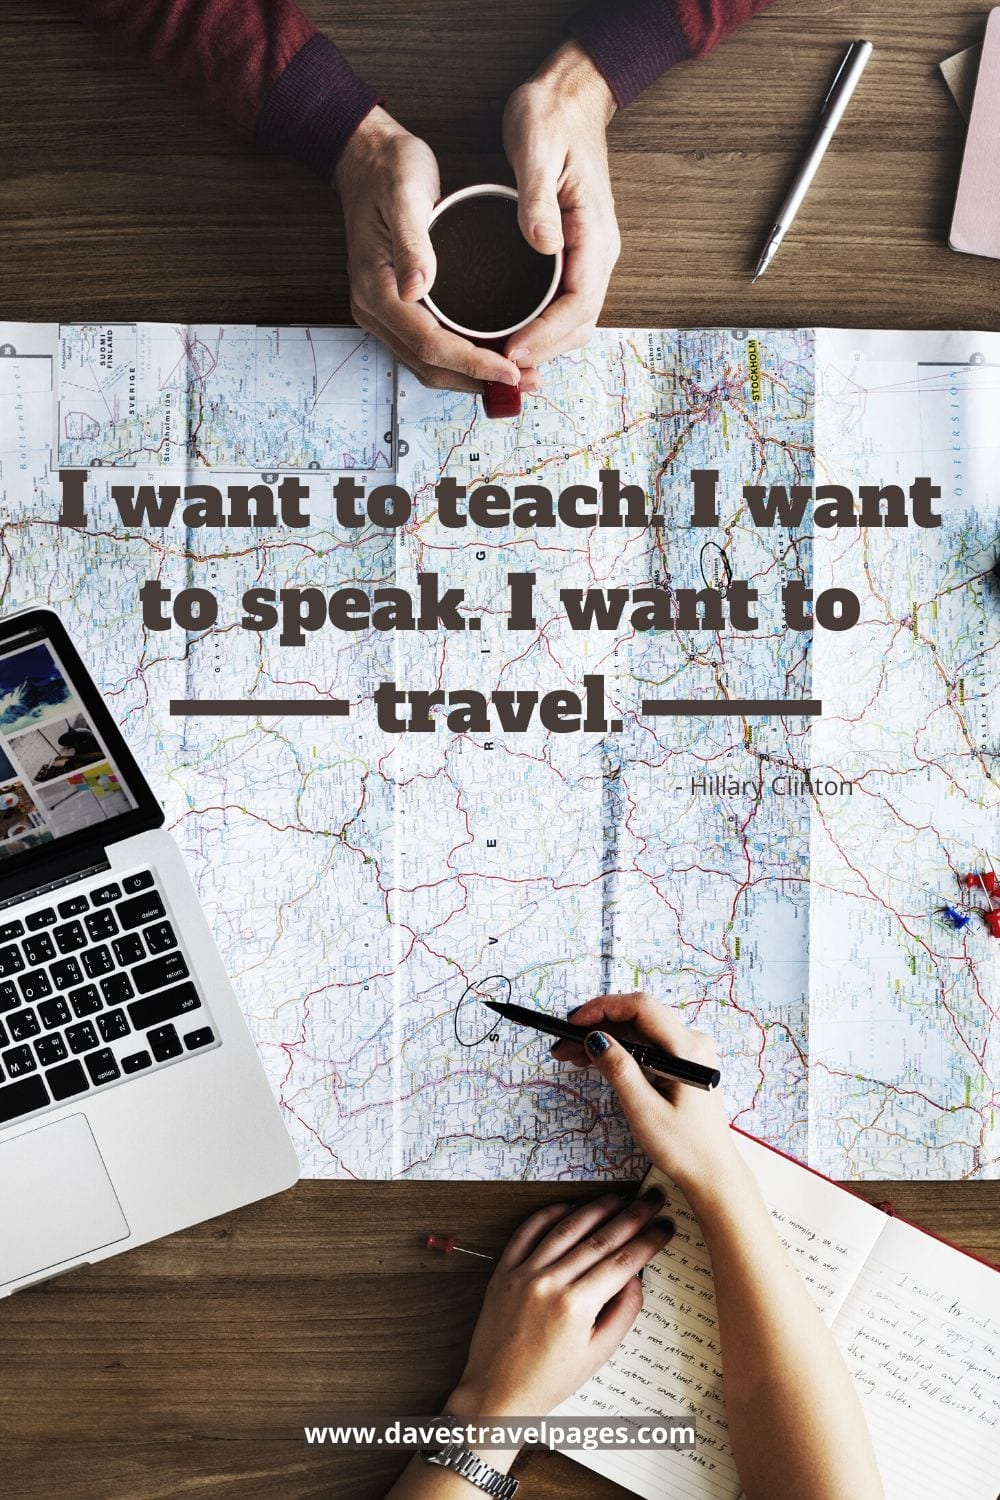 Quotes by famous people about travel: I want to teach. I want to speak. I want to travel. Hillary Clinton